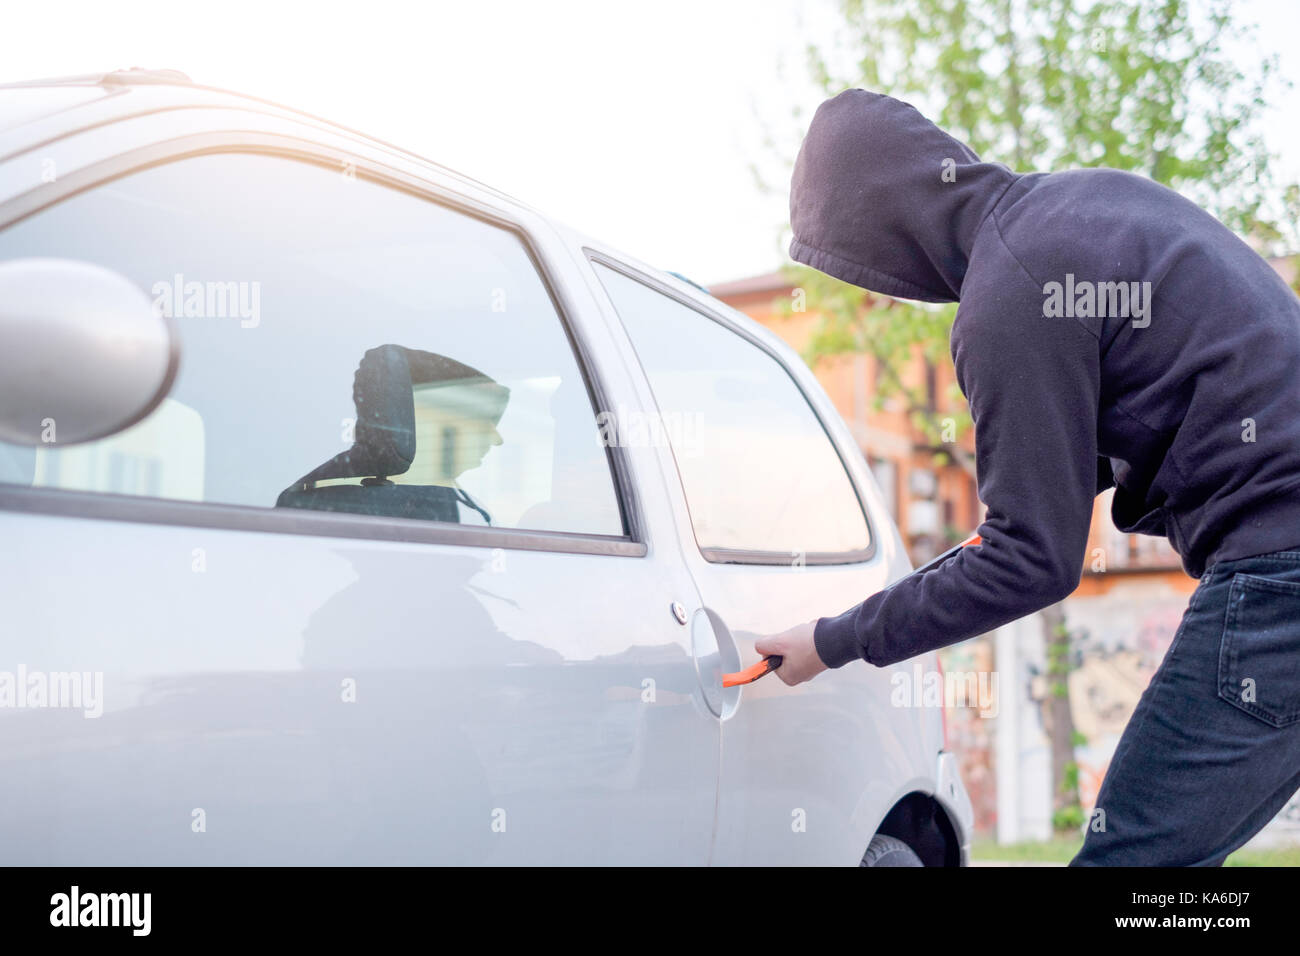 Thief trying to pick the lock of a parked car - Stock Image